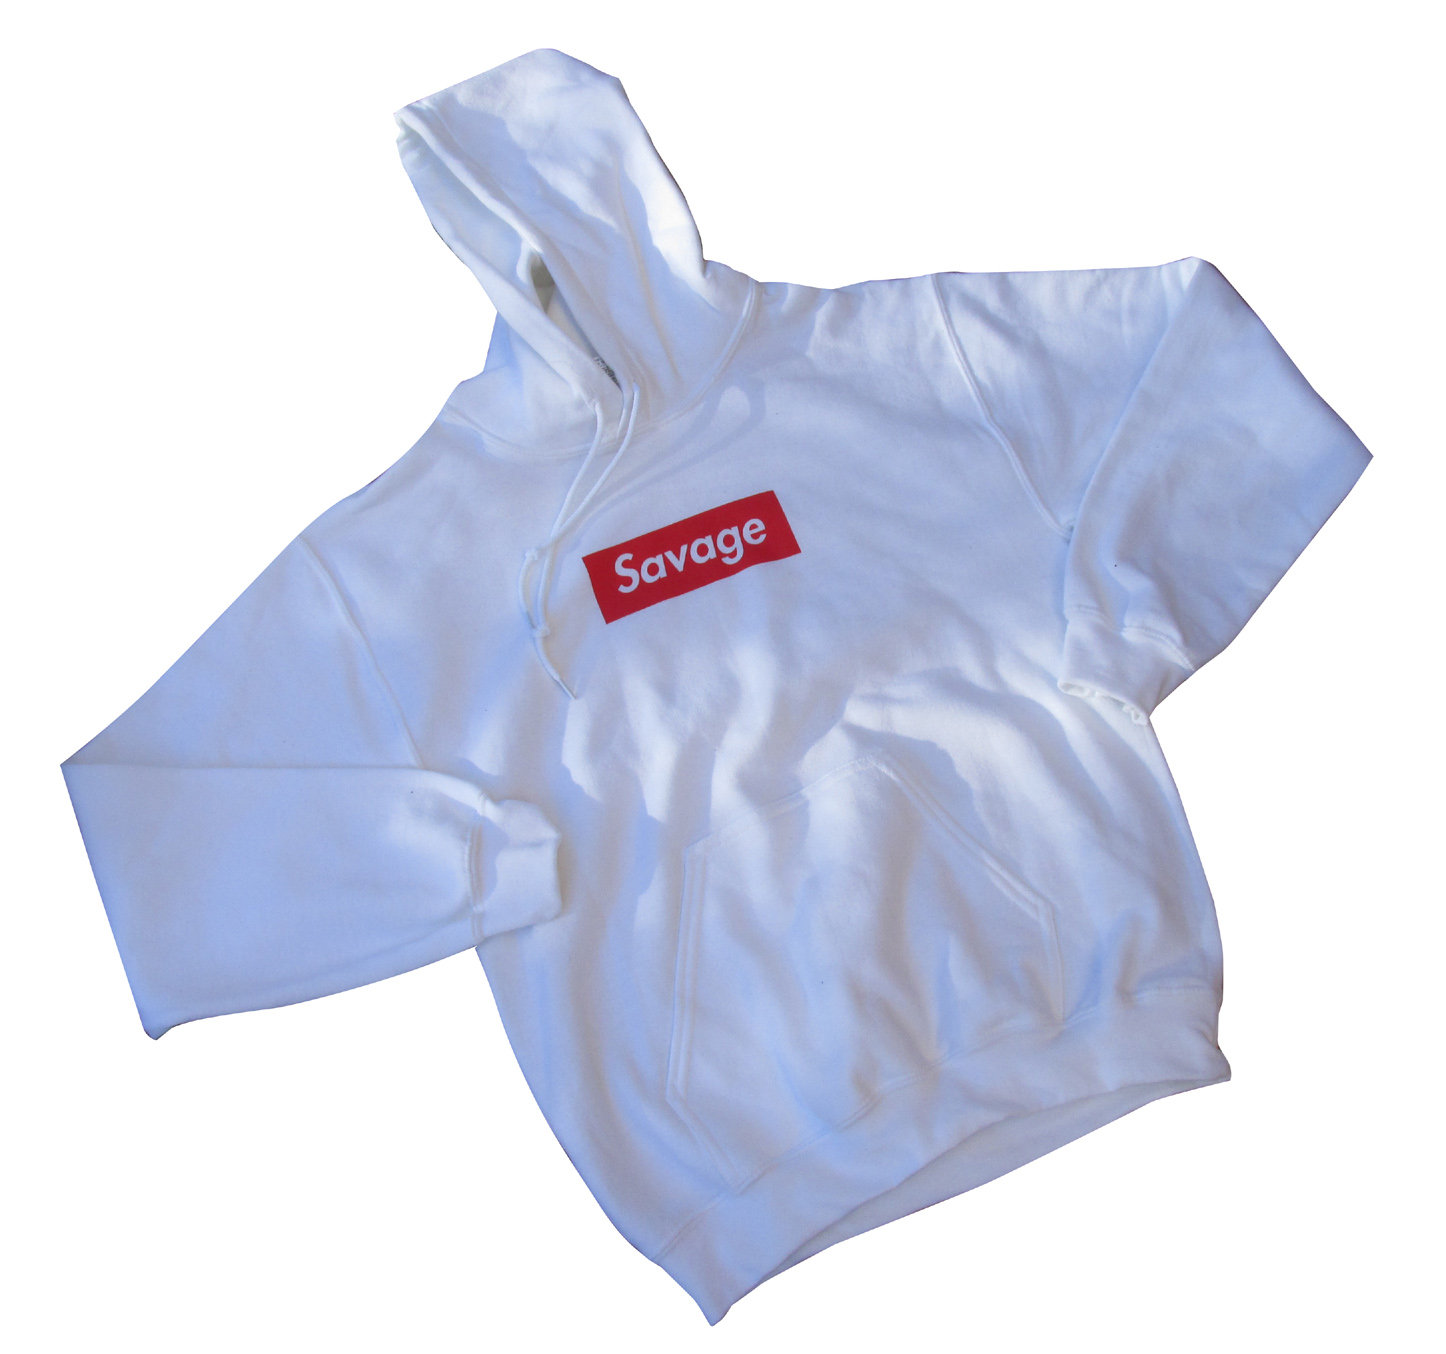 8cc8ab20a69 Supreme savage box logo white hoodie hooded sweatshirt sweater jpg  1446x1354 Savage sleeve hoodie cool supreme